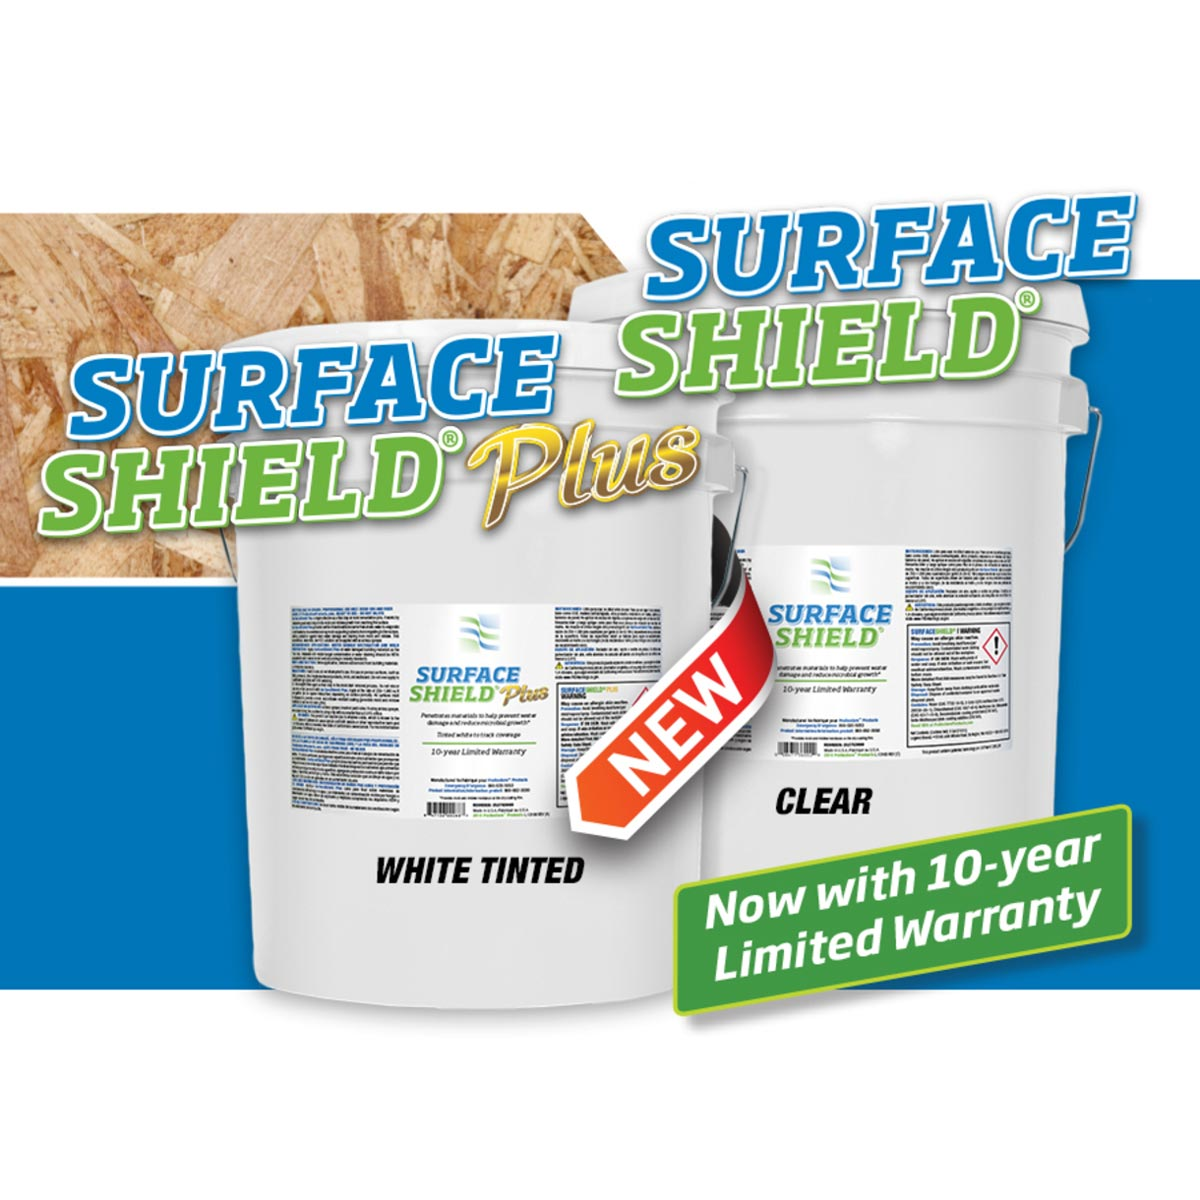 Chemspec Prorestore OdorX 252763000 Surface Shield Plus 5 Gallon Pail Unsmoke White Tint